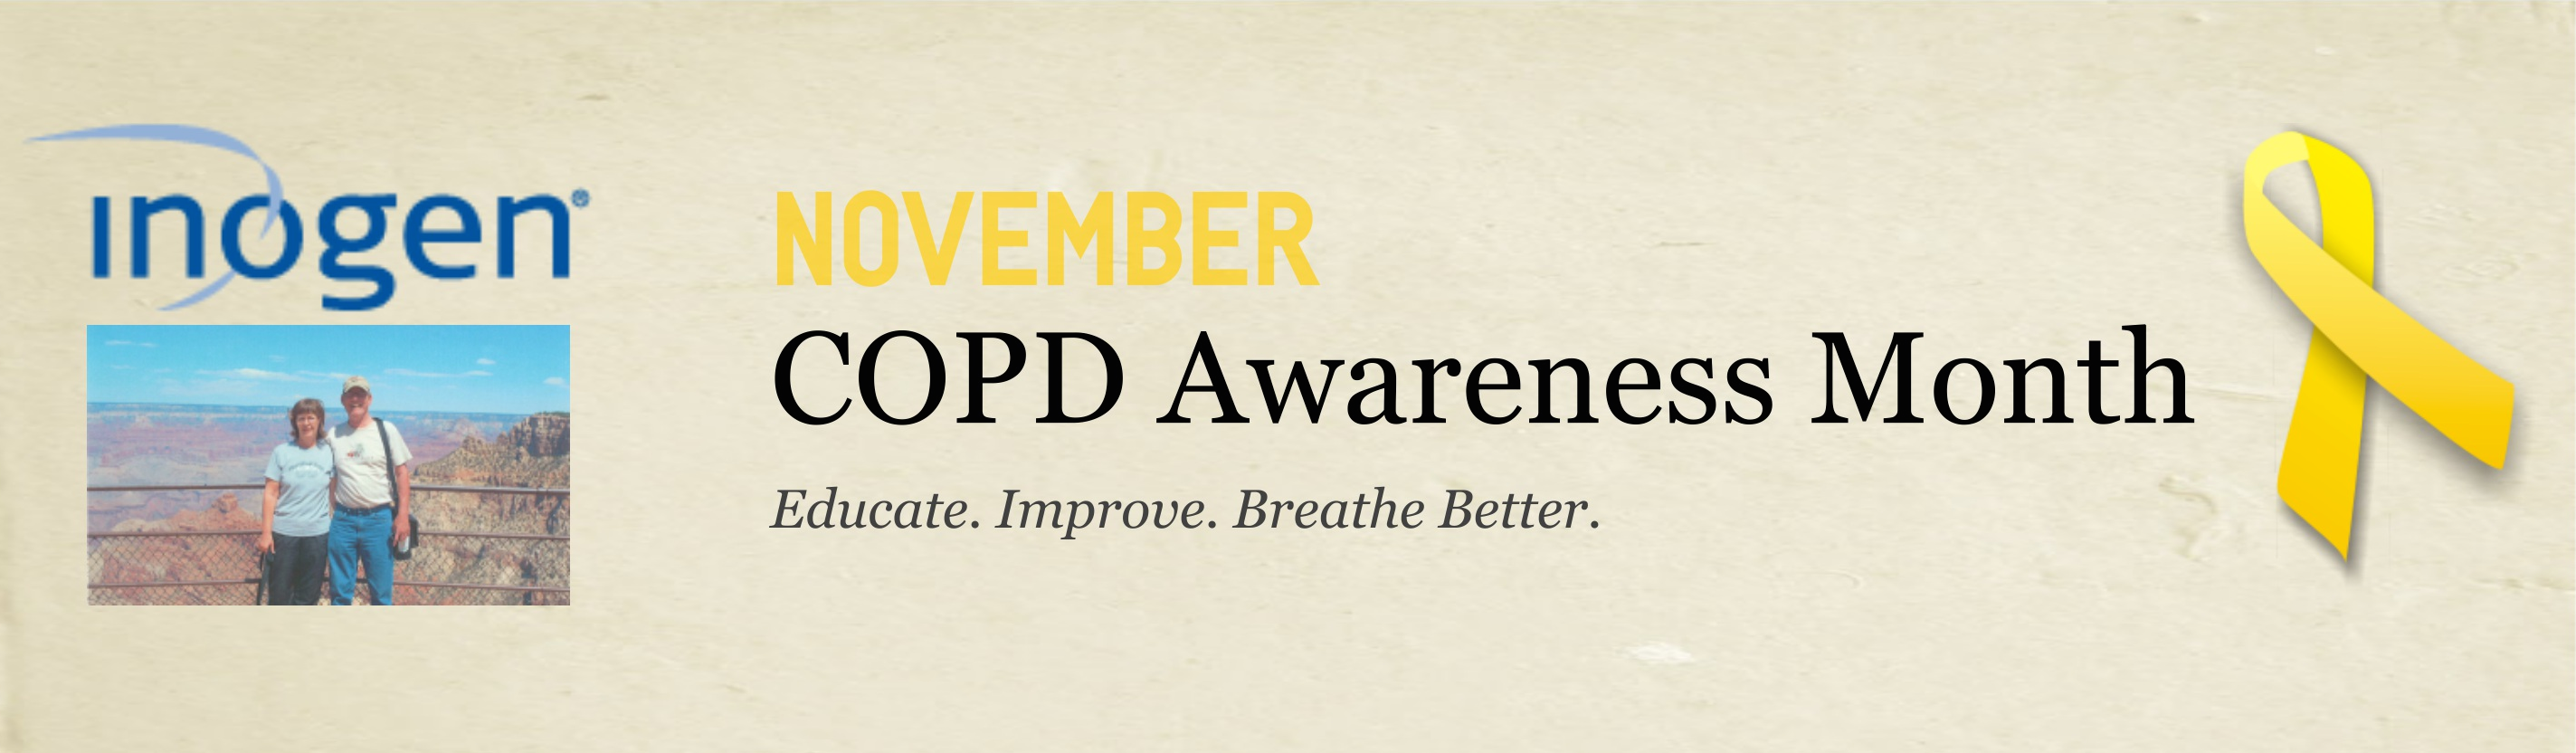 COPD Awareness month, COPD awarness, COPD November